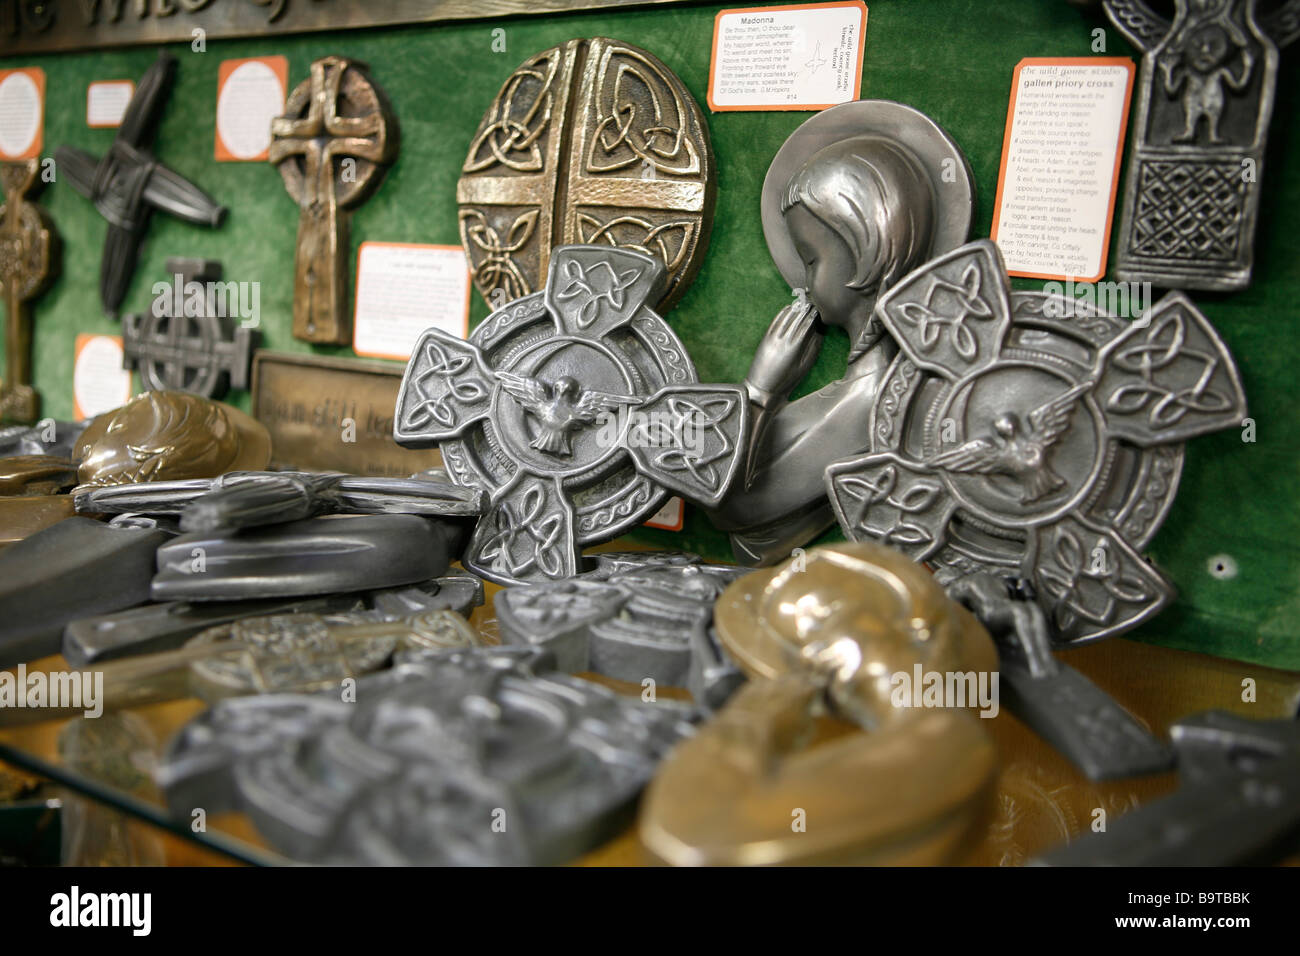 Celtic cross and other souvenirs which are made of peat, Donegal, Republic of Ireland. - Stock Image